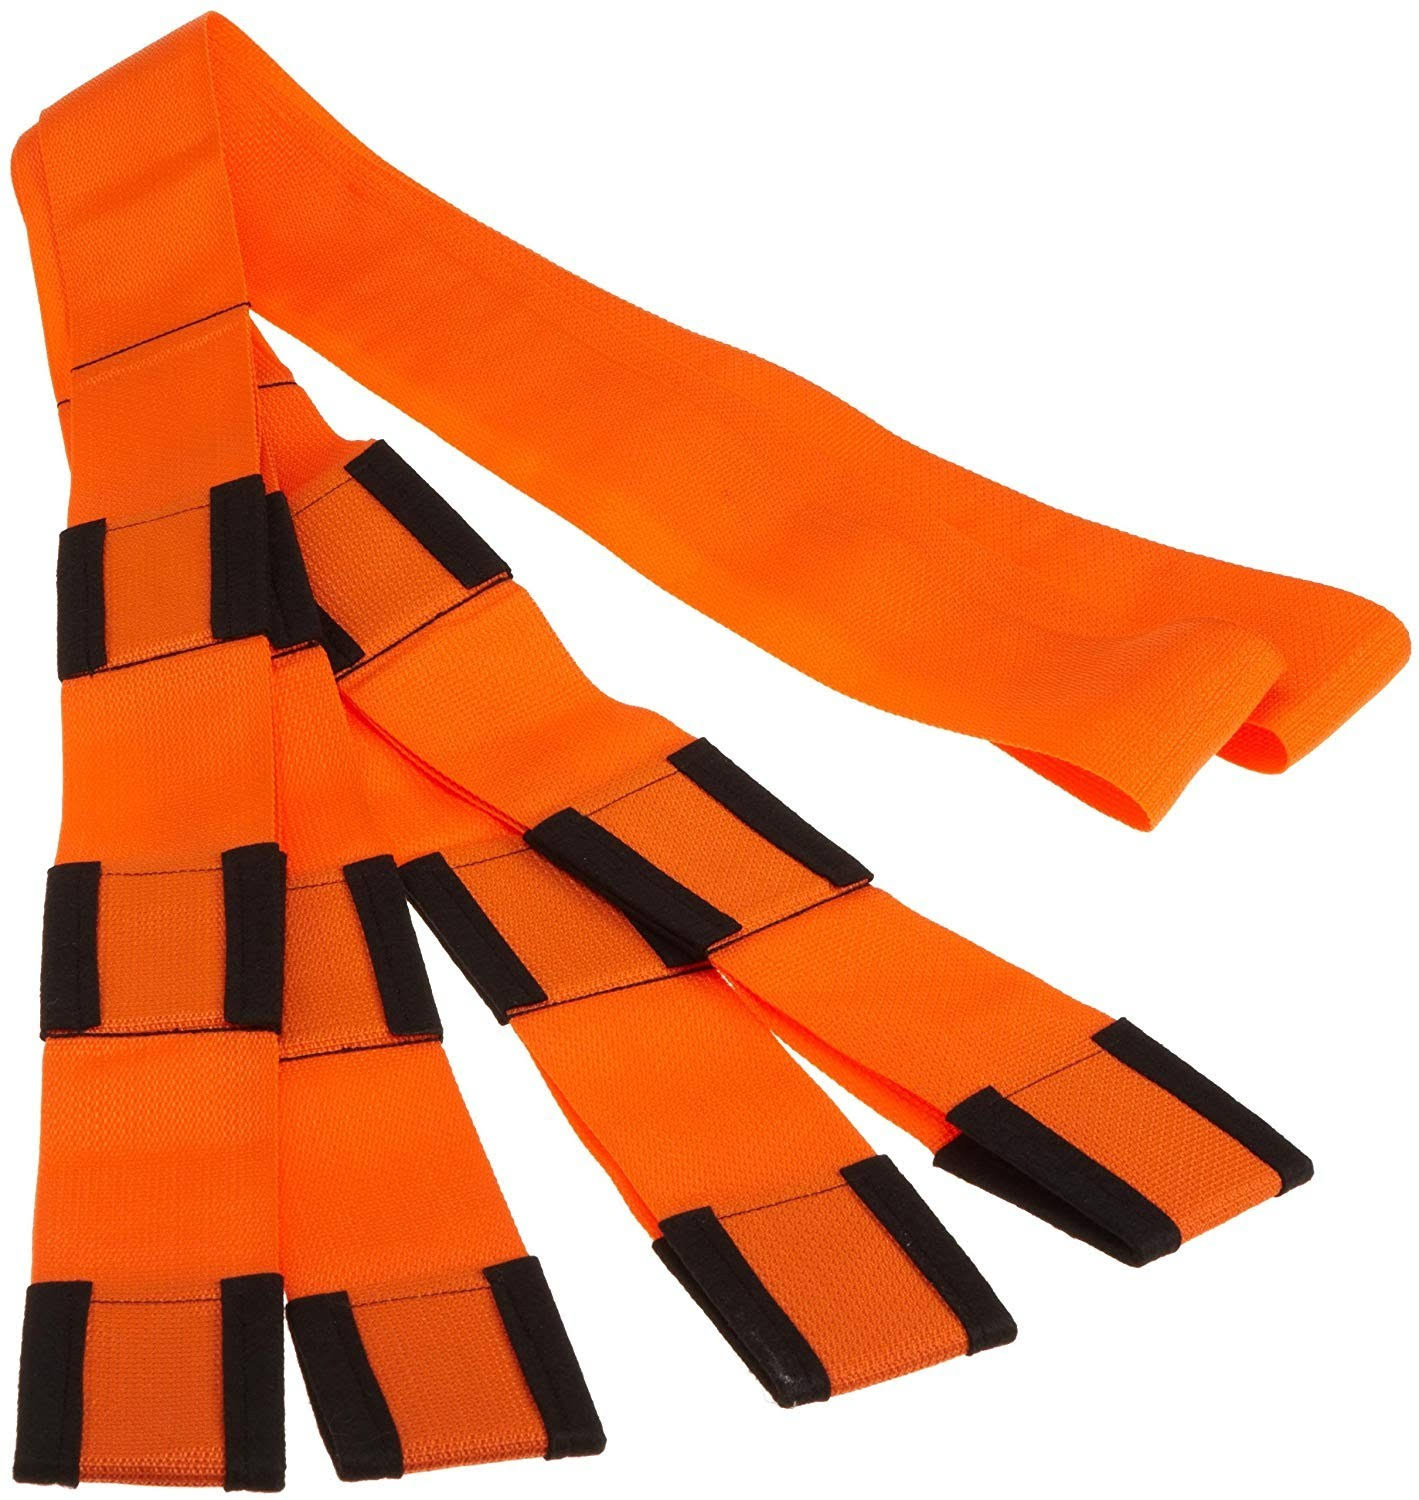 Forearm Forklift L74995CN Lifting and Moving Straps - Orange